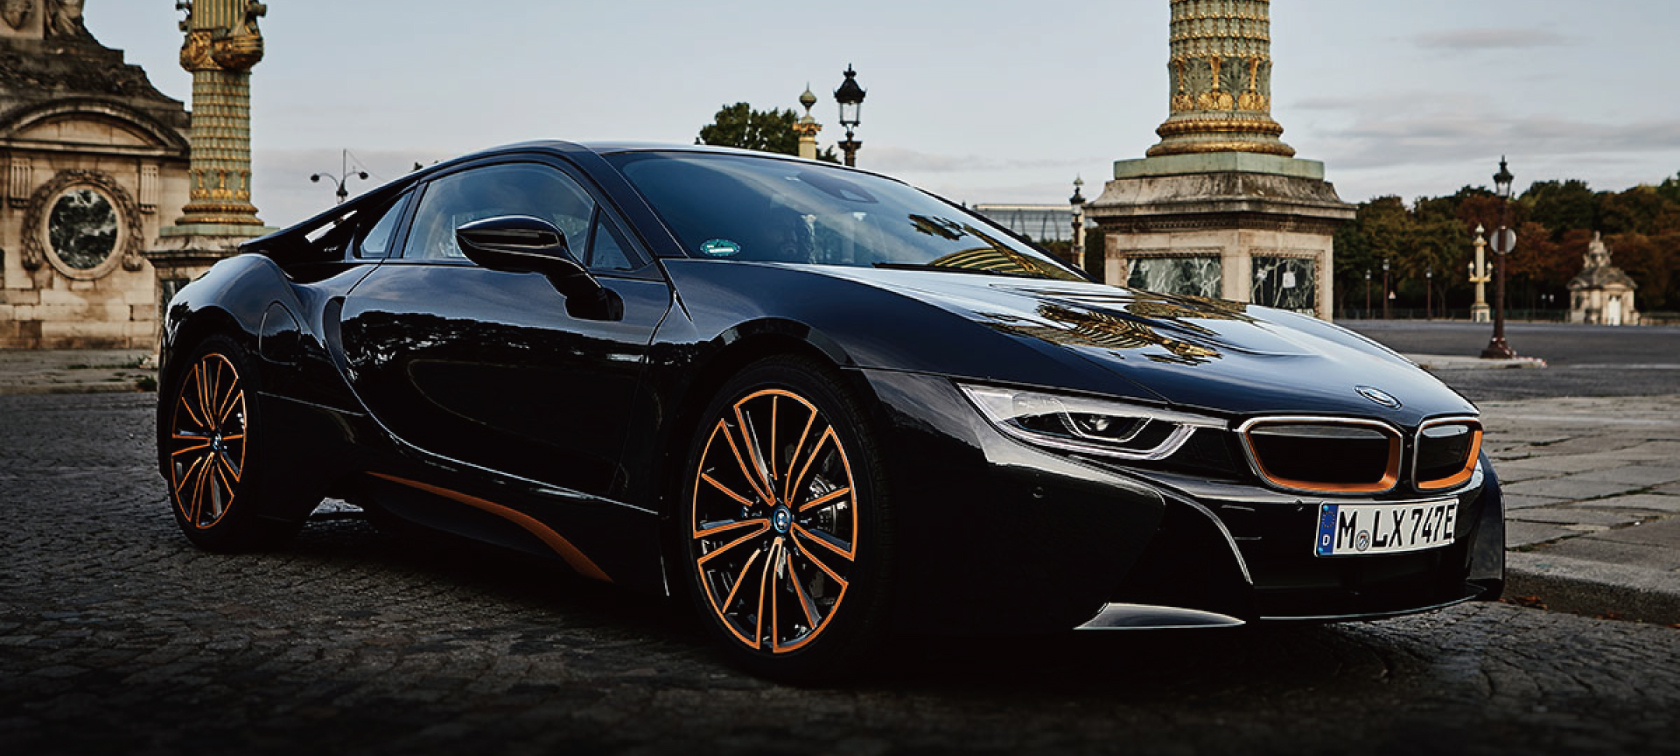 BMW i8 ULTIMATE SOPHISTO EDITION、登場。